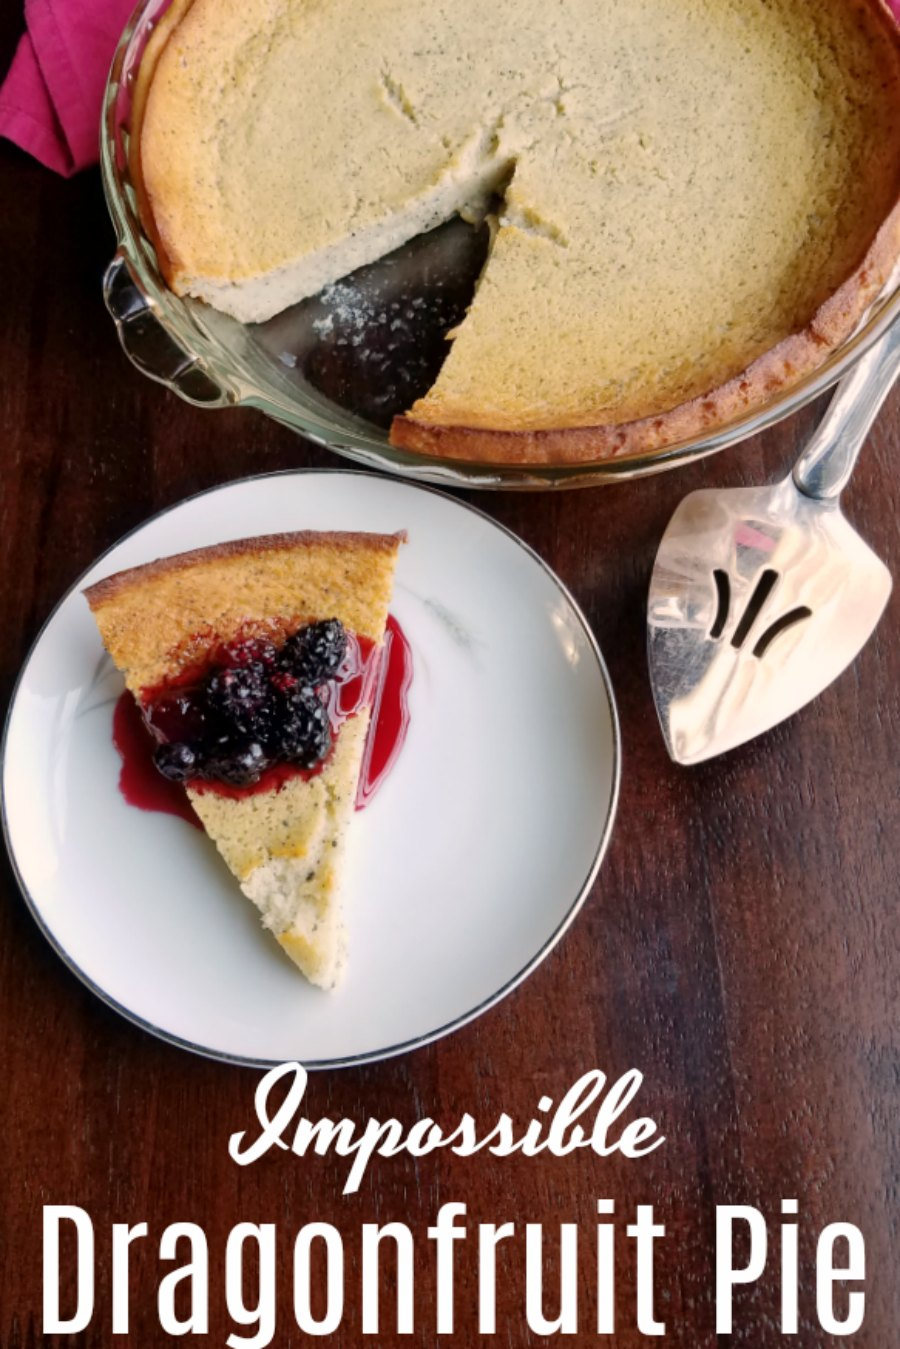 A crustless pie that comes together simply in a food processor or blender. This impossible dragonfruit pie is a great easy dessert!